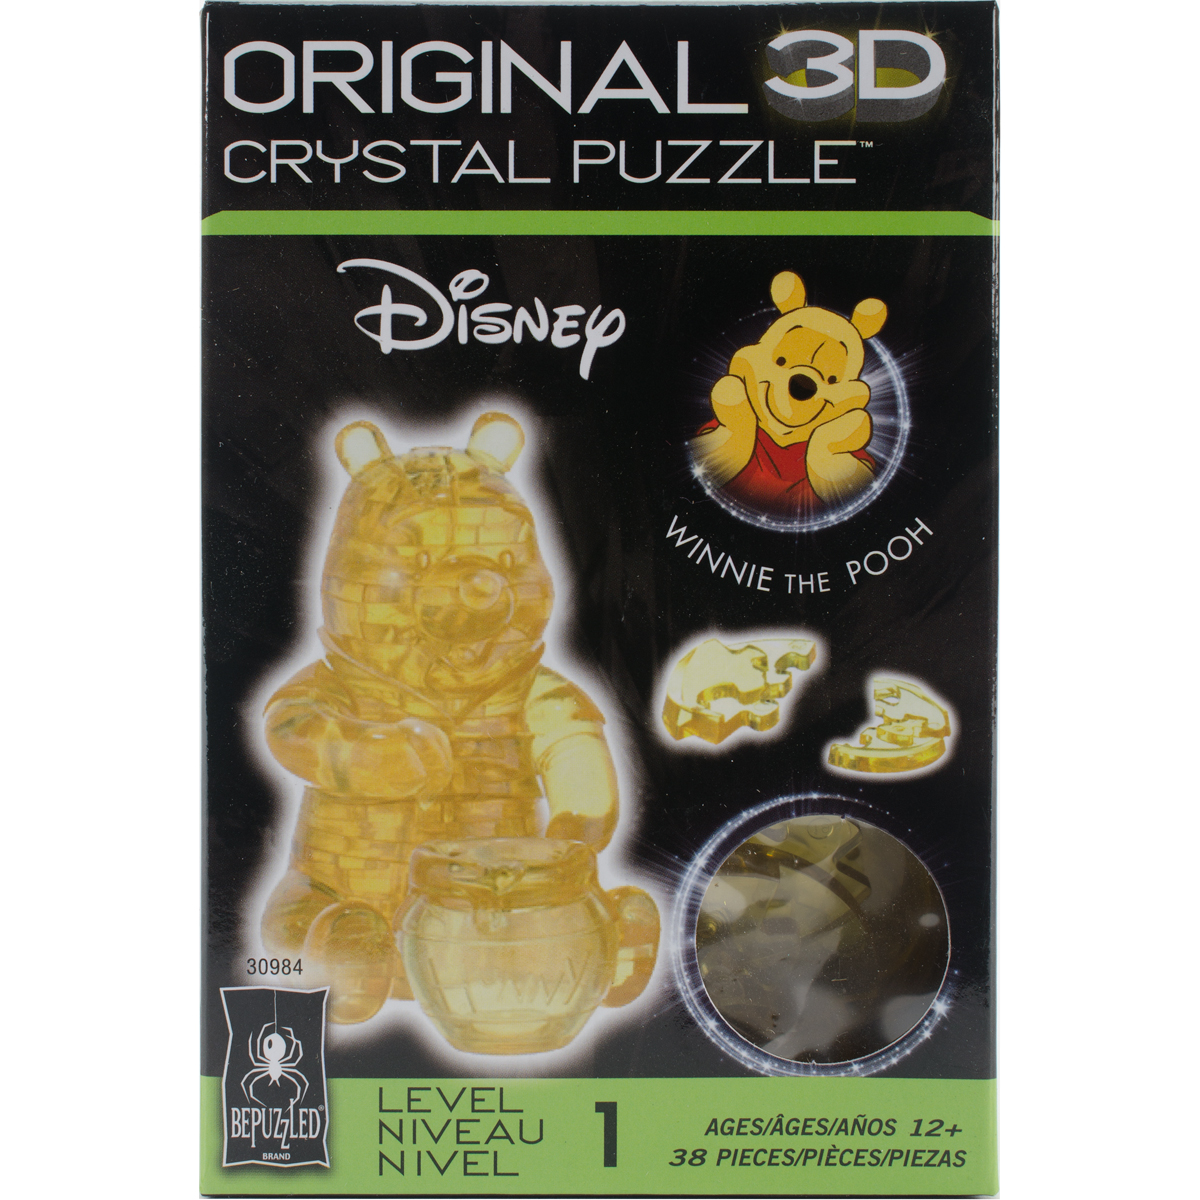 3D Licensed Crystal PuzzleWinnie The Pooh